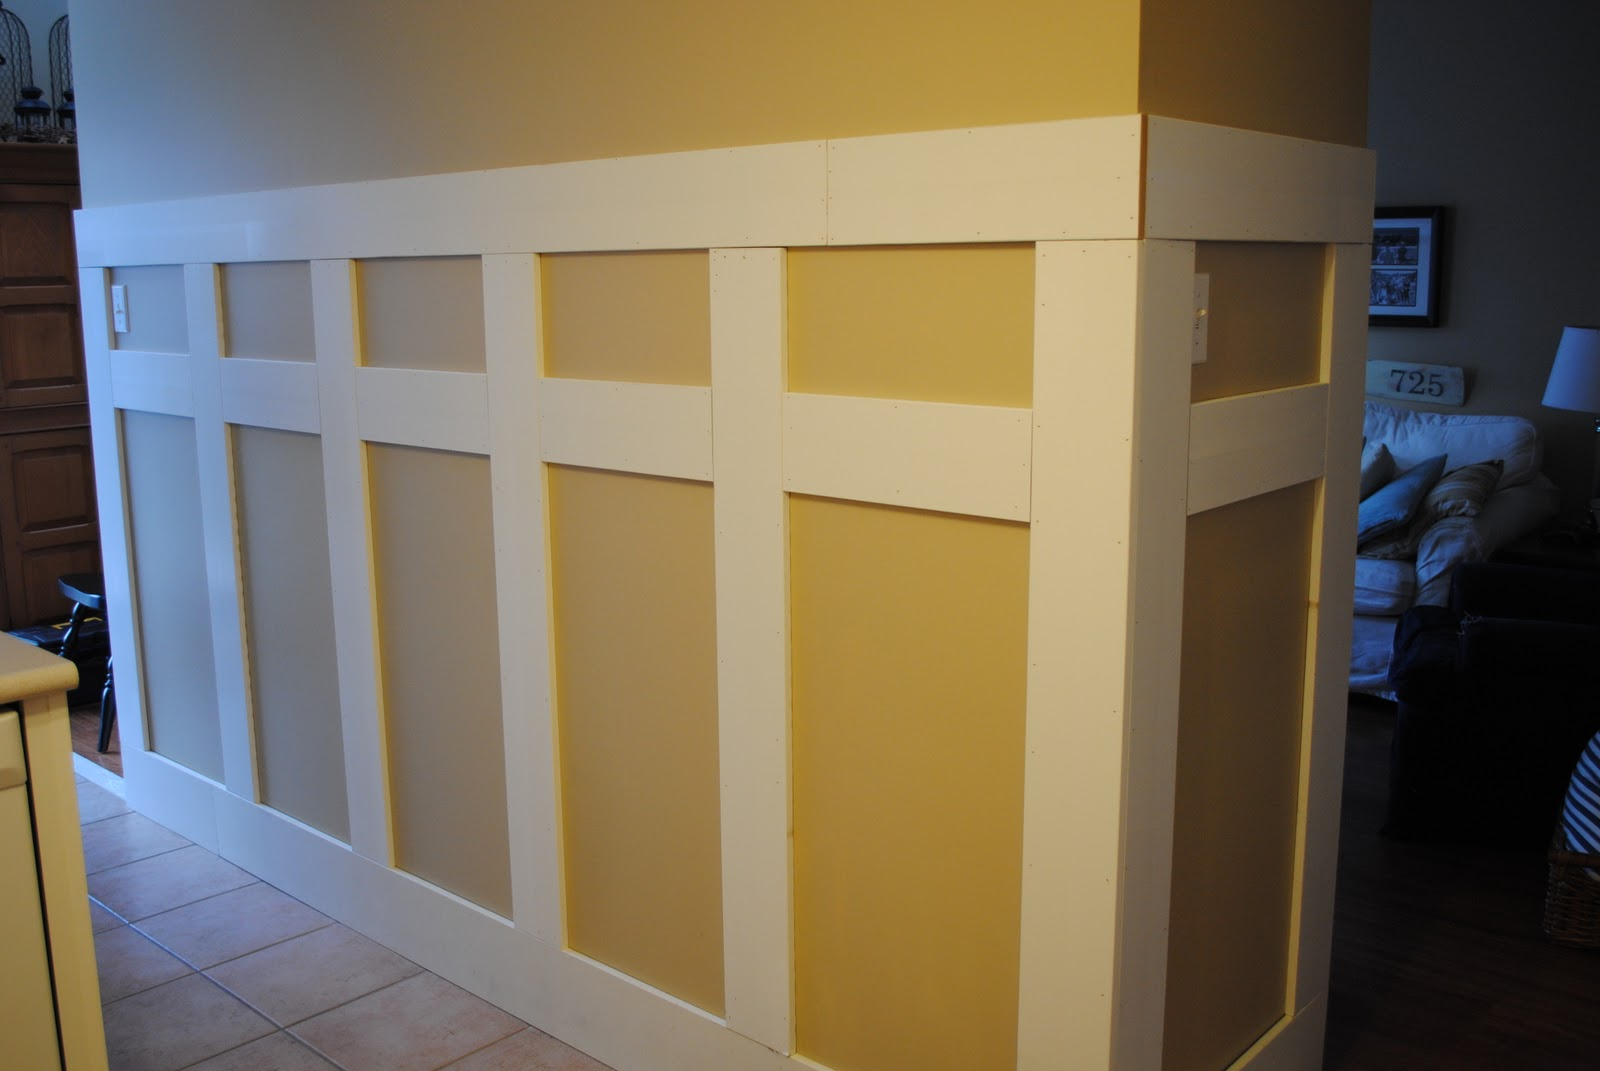 Rustic Maple: Adding Some Architectural Interest~Tackling Another Wall